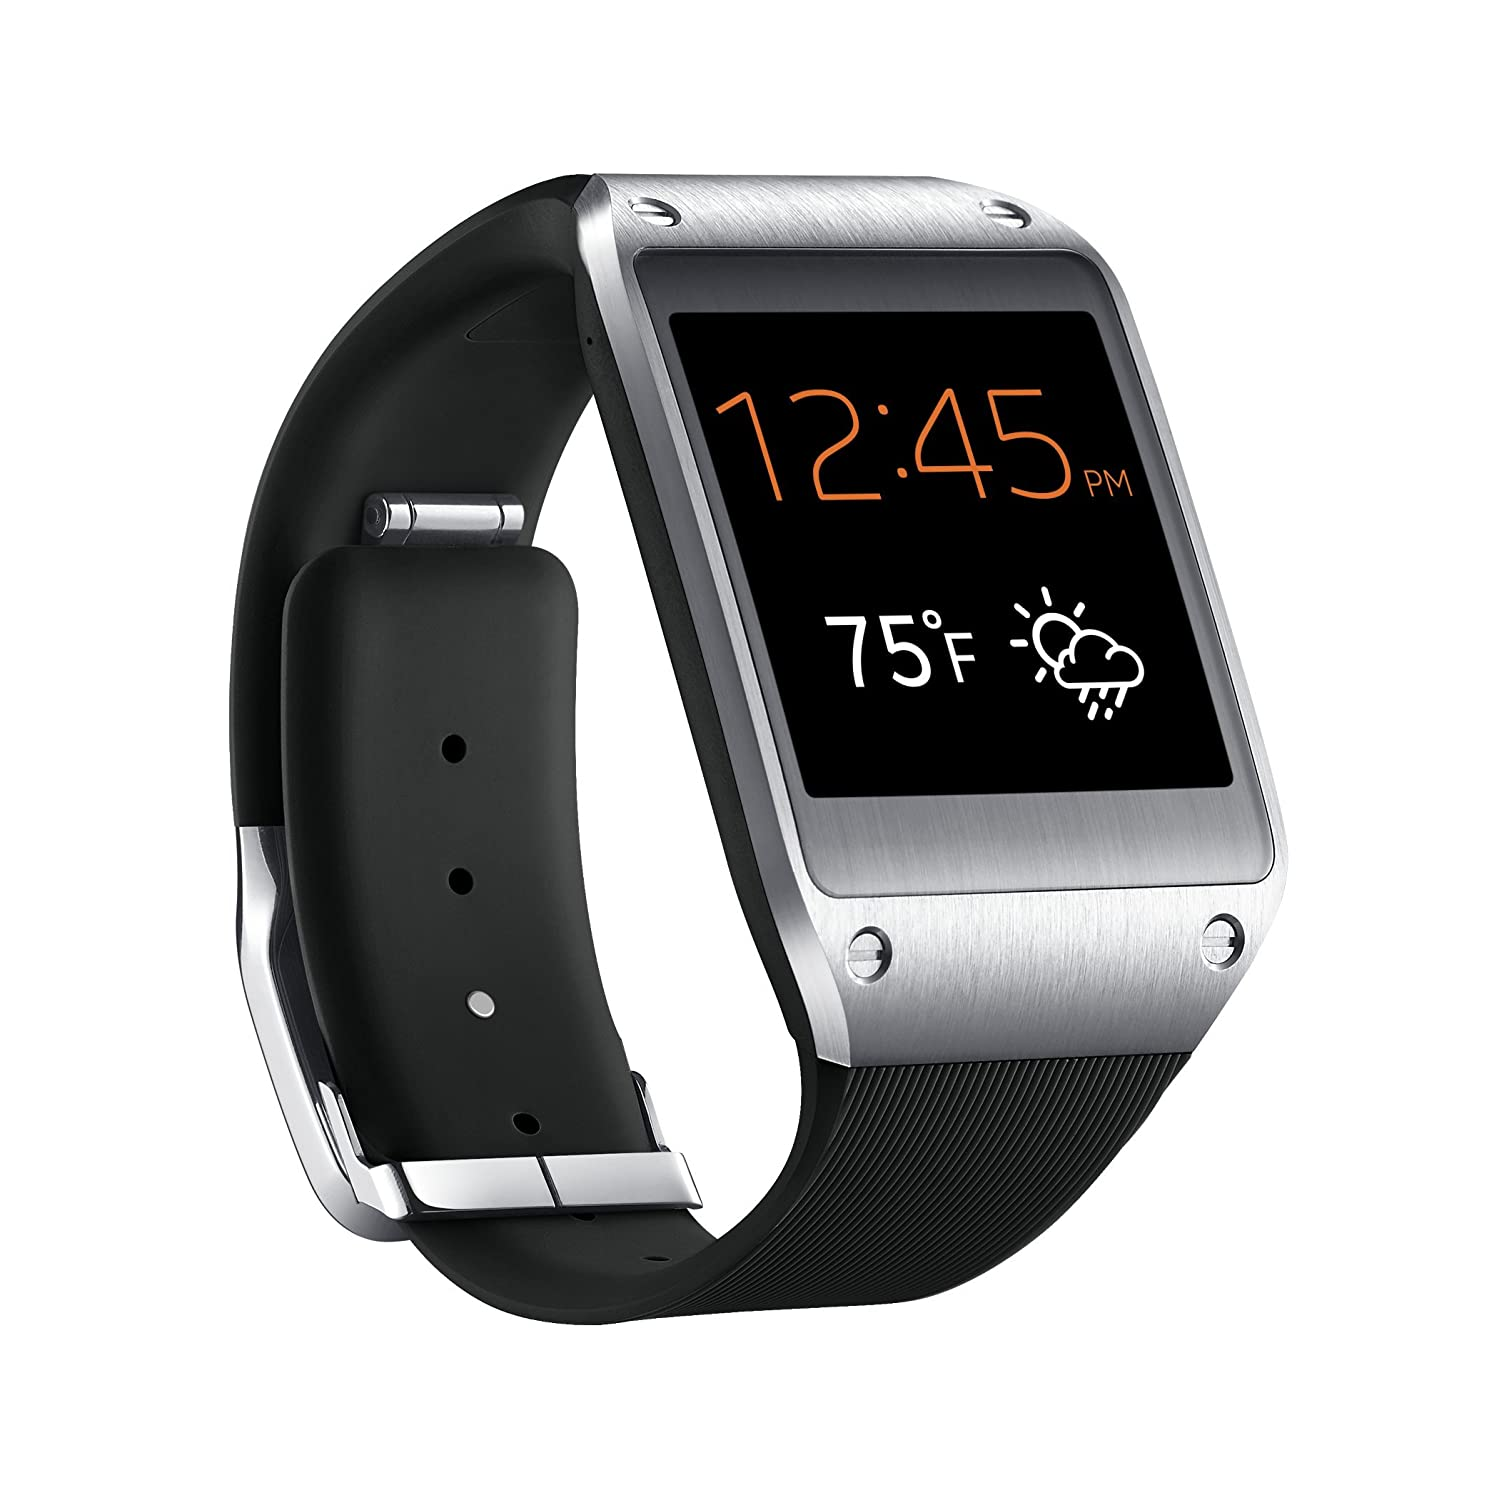 samsung galaxy gear smart watch price in pakistan samsung in pakistan at symbios pk